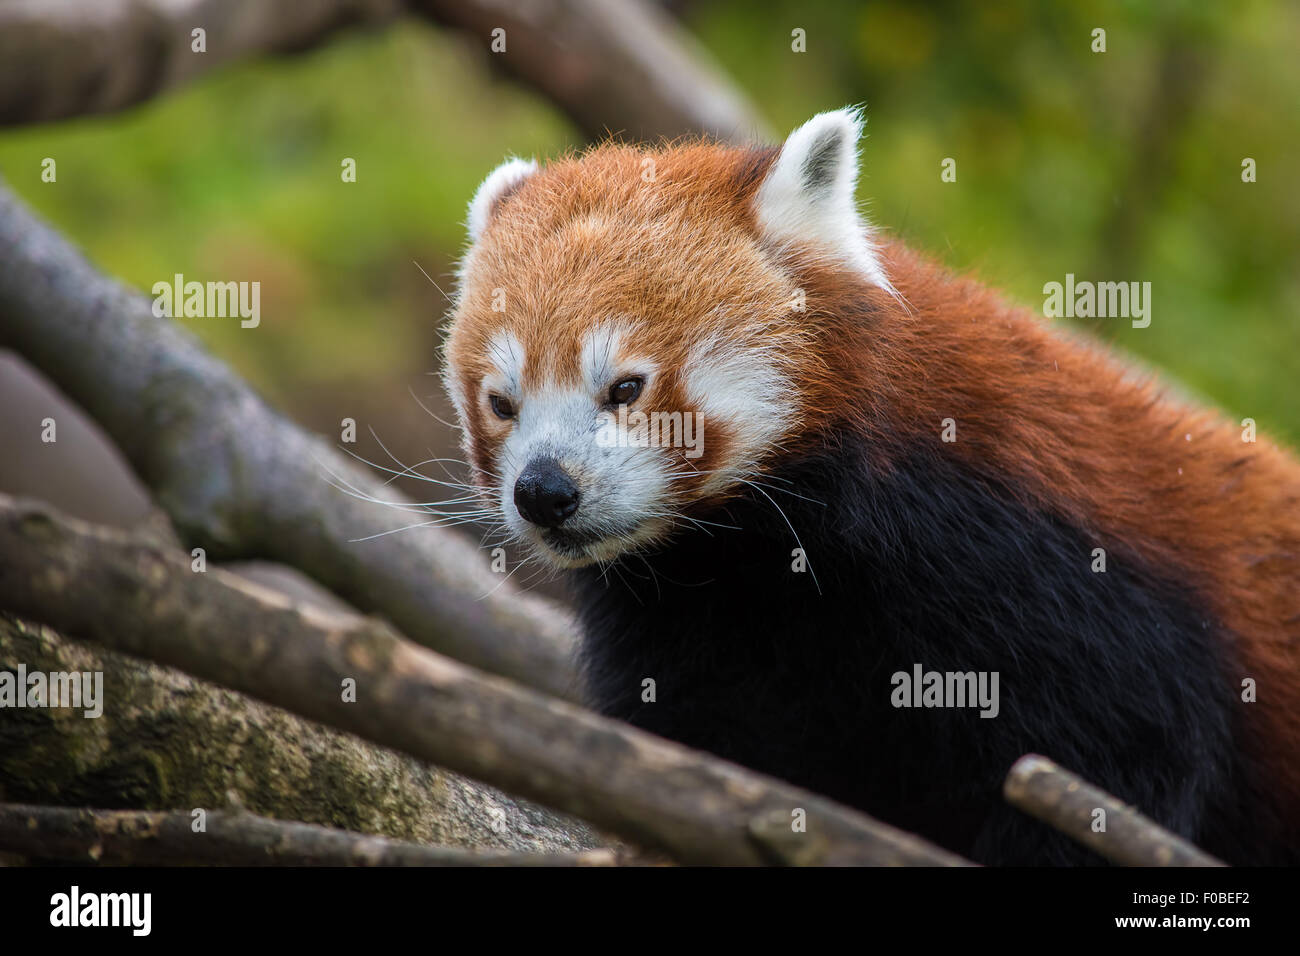 Close up of a Red Panda's face - Stock Image